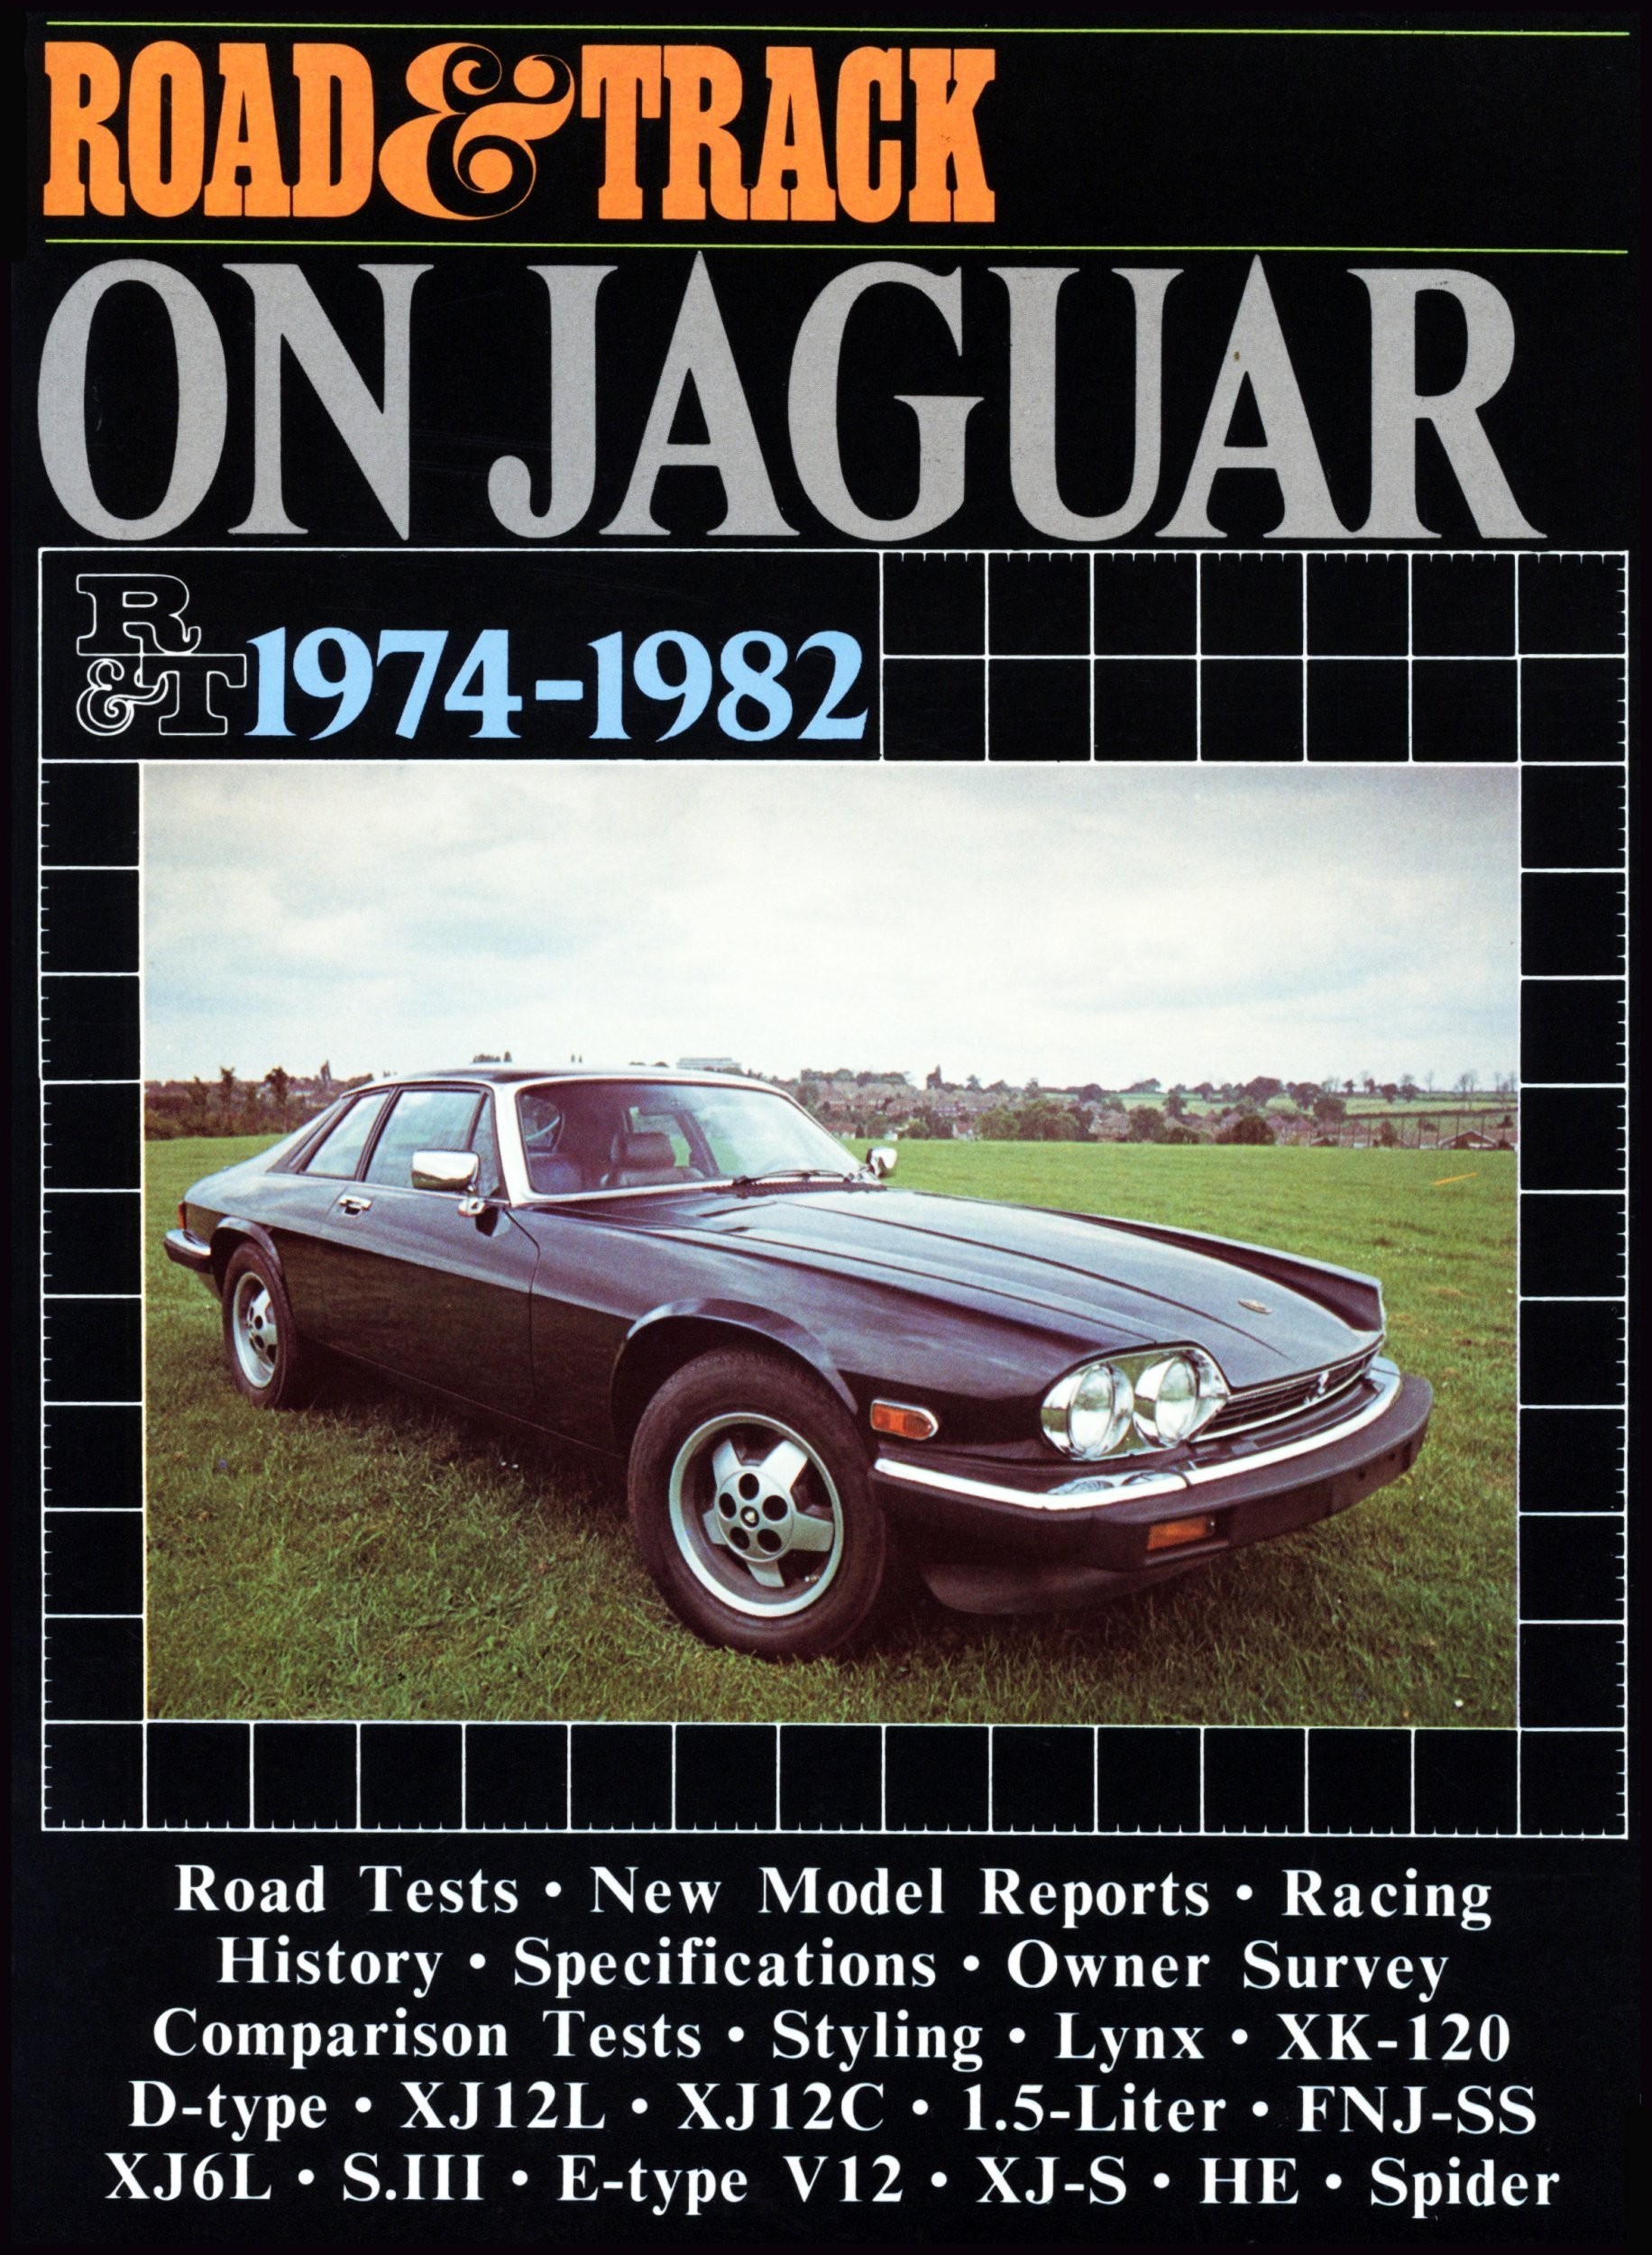 road-track-on-jaguar-1974-1982